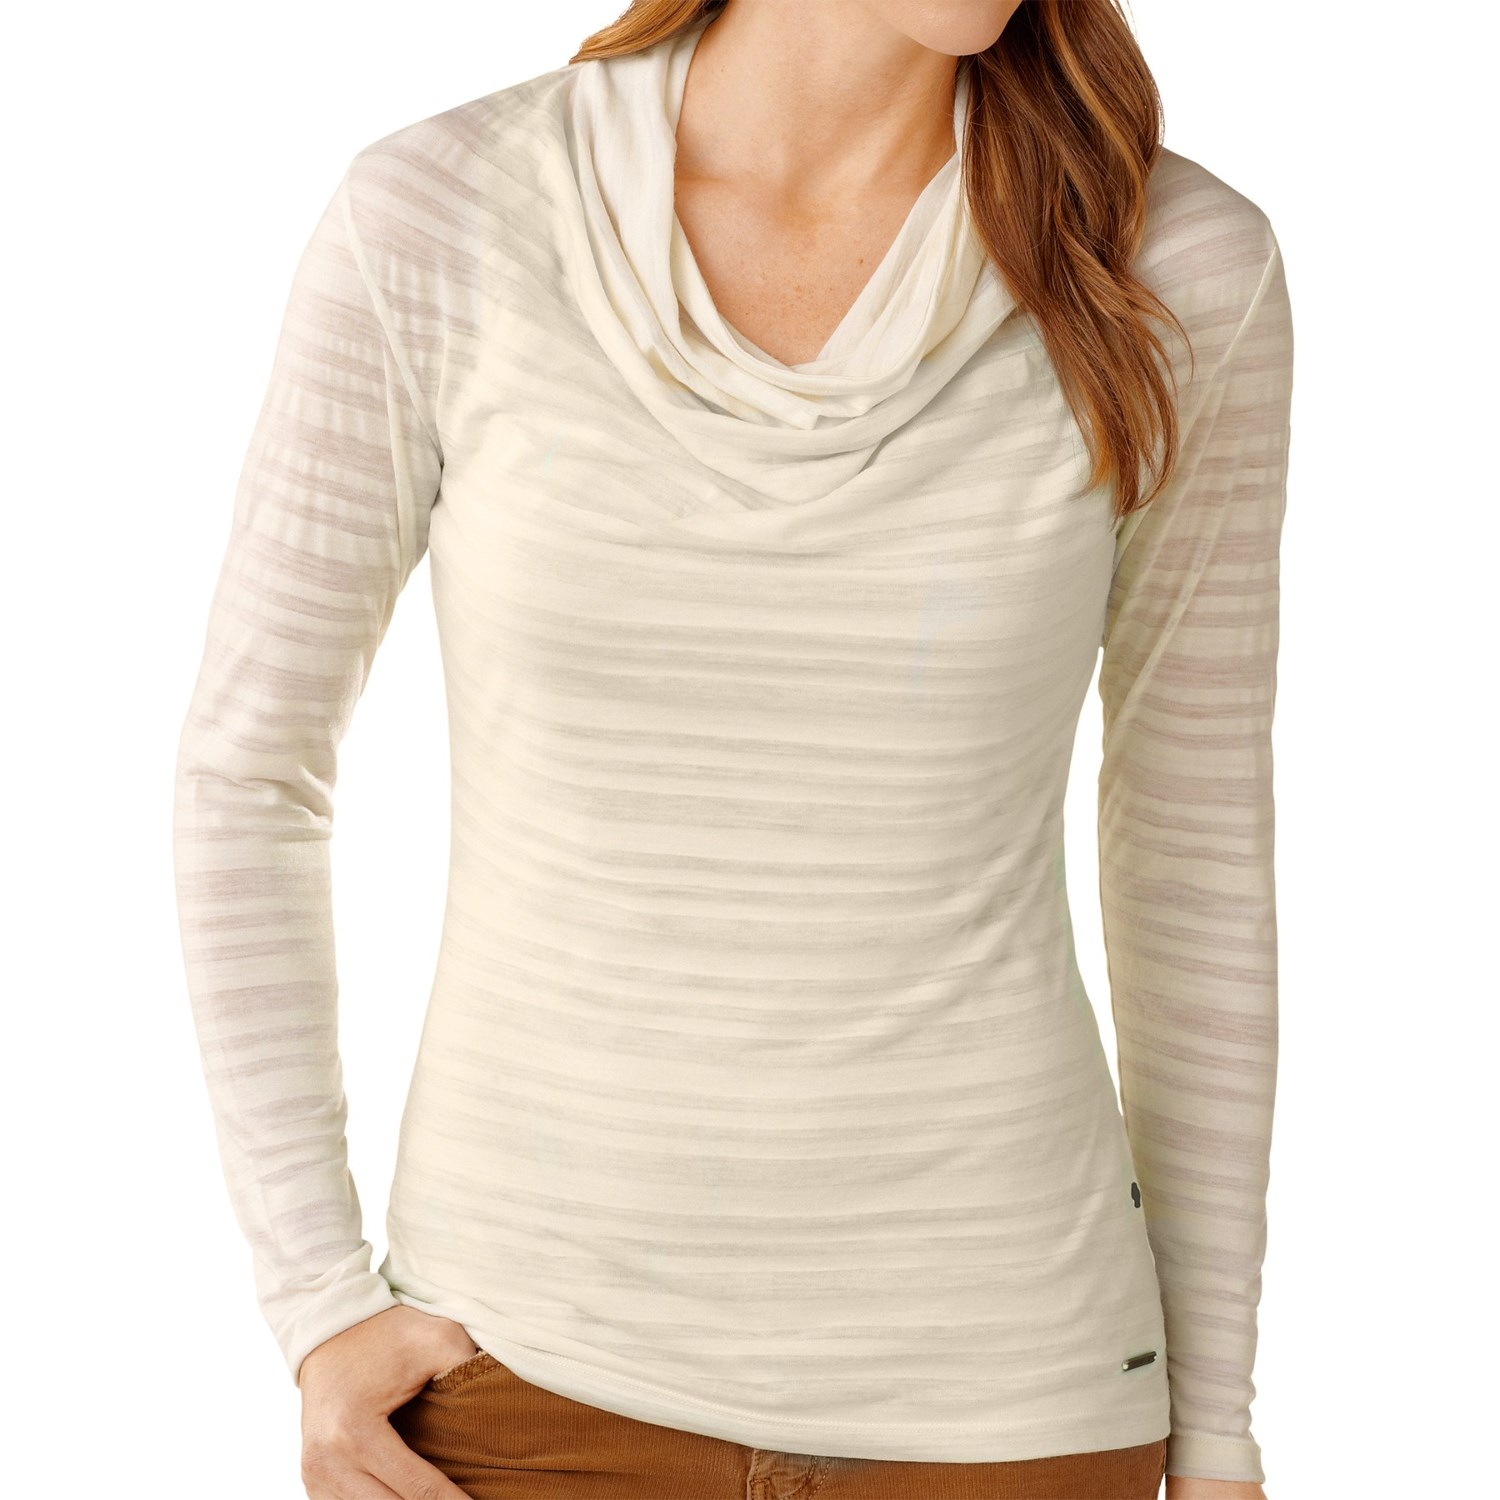 Smartwool draped neck burnout shirt merino wool long for Merino wool shirt womens